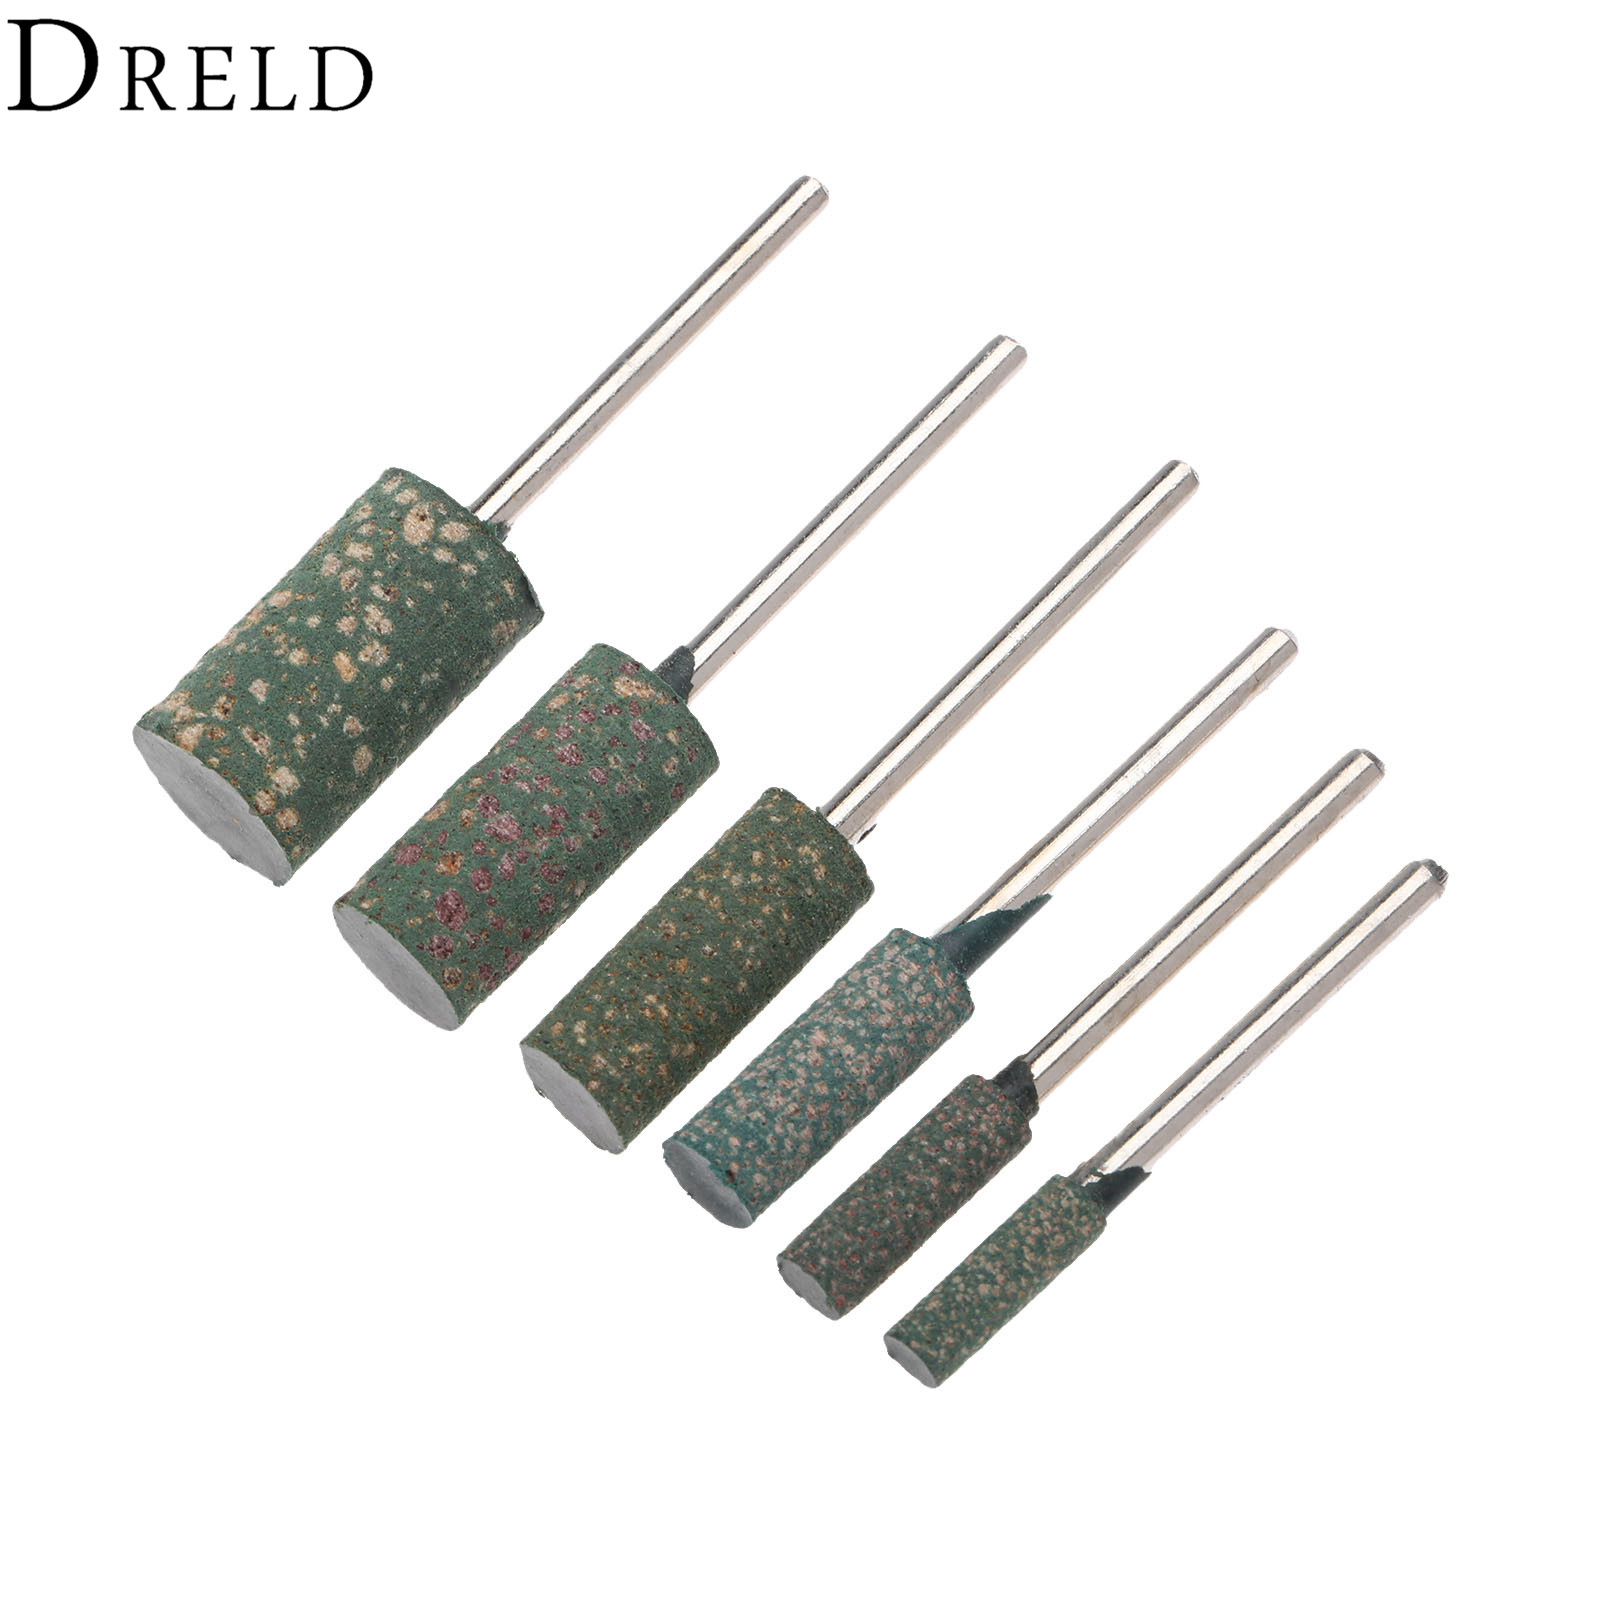 DRELD 6Pcs 3mm Shank Rubber Grinding Head Buffing Polishing Grinding Mounted Point For Metalworking Grinder Dremel  Rotary Tool